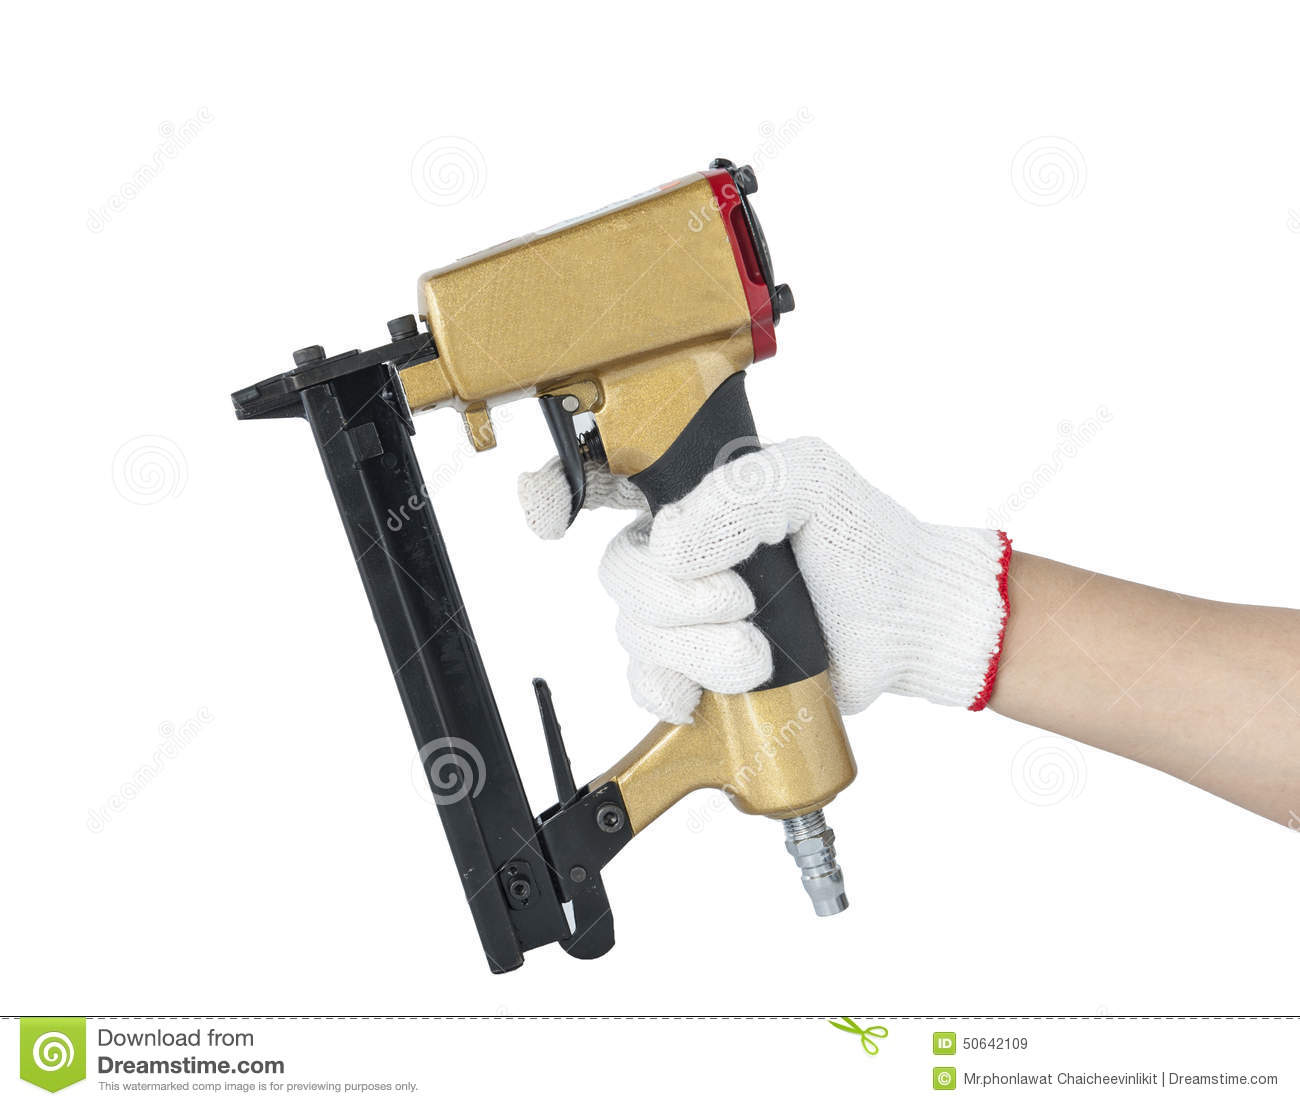 Tools Pneumatic nailers stock image. Image of isolated - 50642109